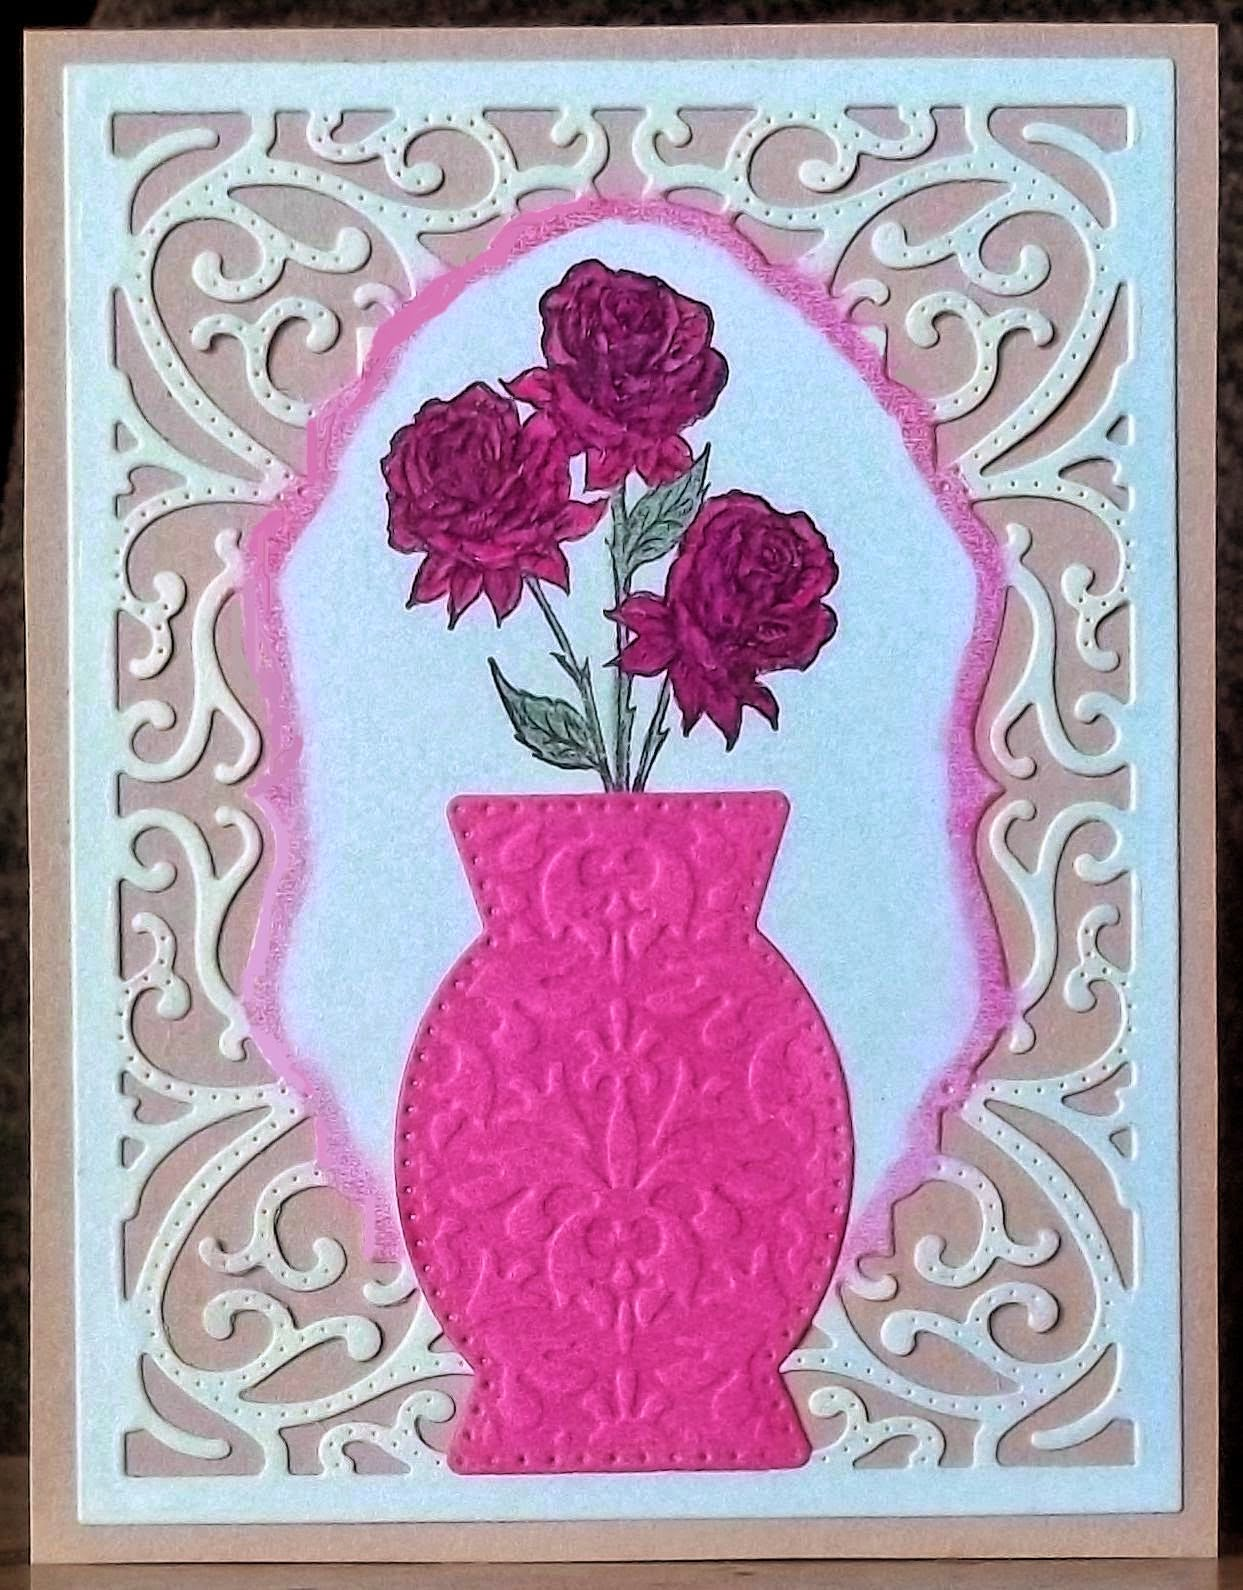 Our Daily Bread Designs, Rose, Decorative Vase, Vintage Flourish Pattern Die